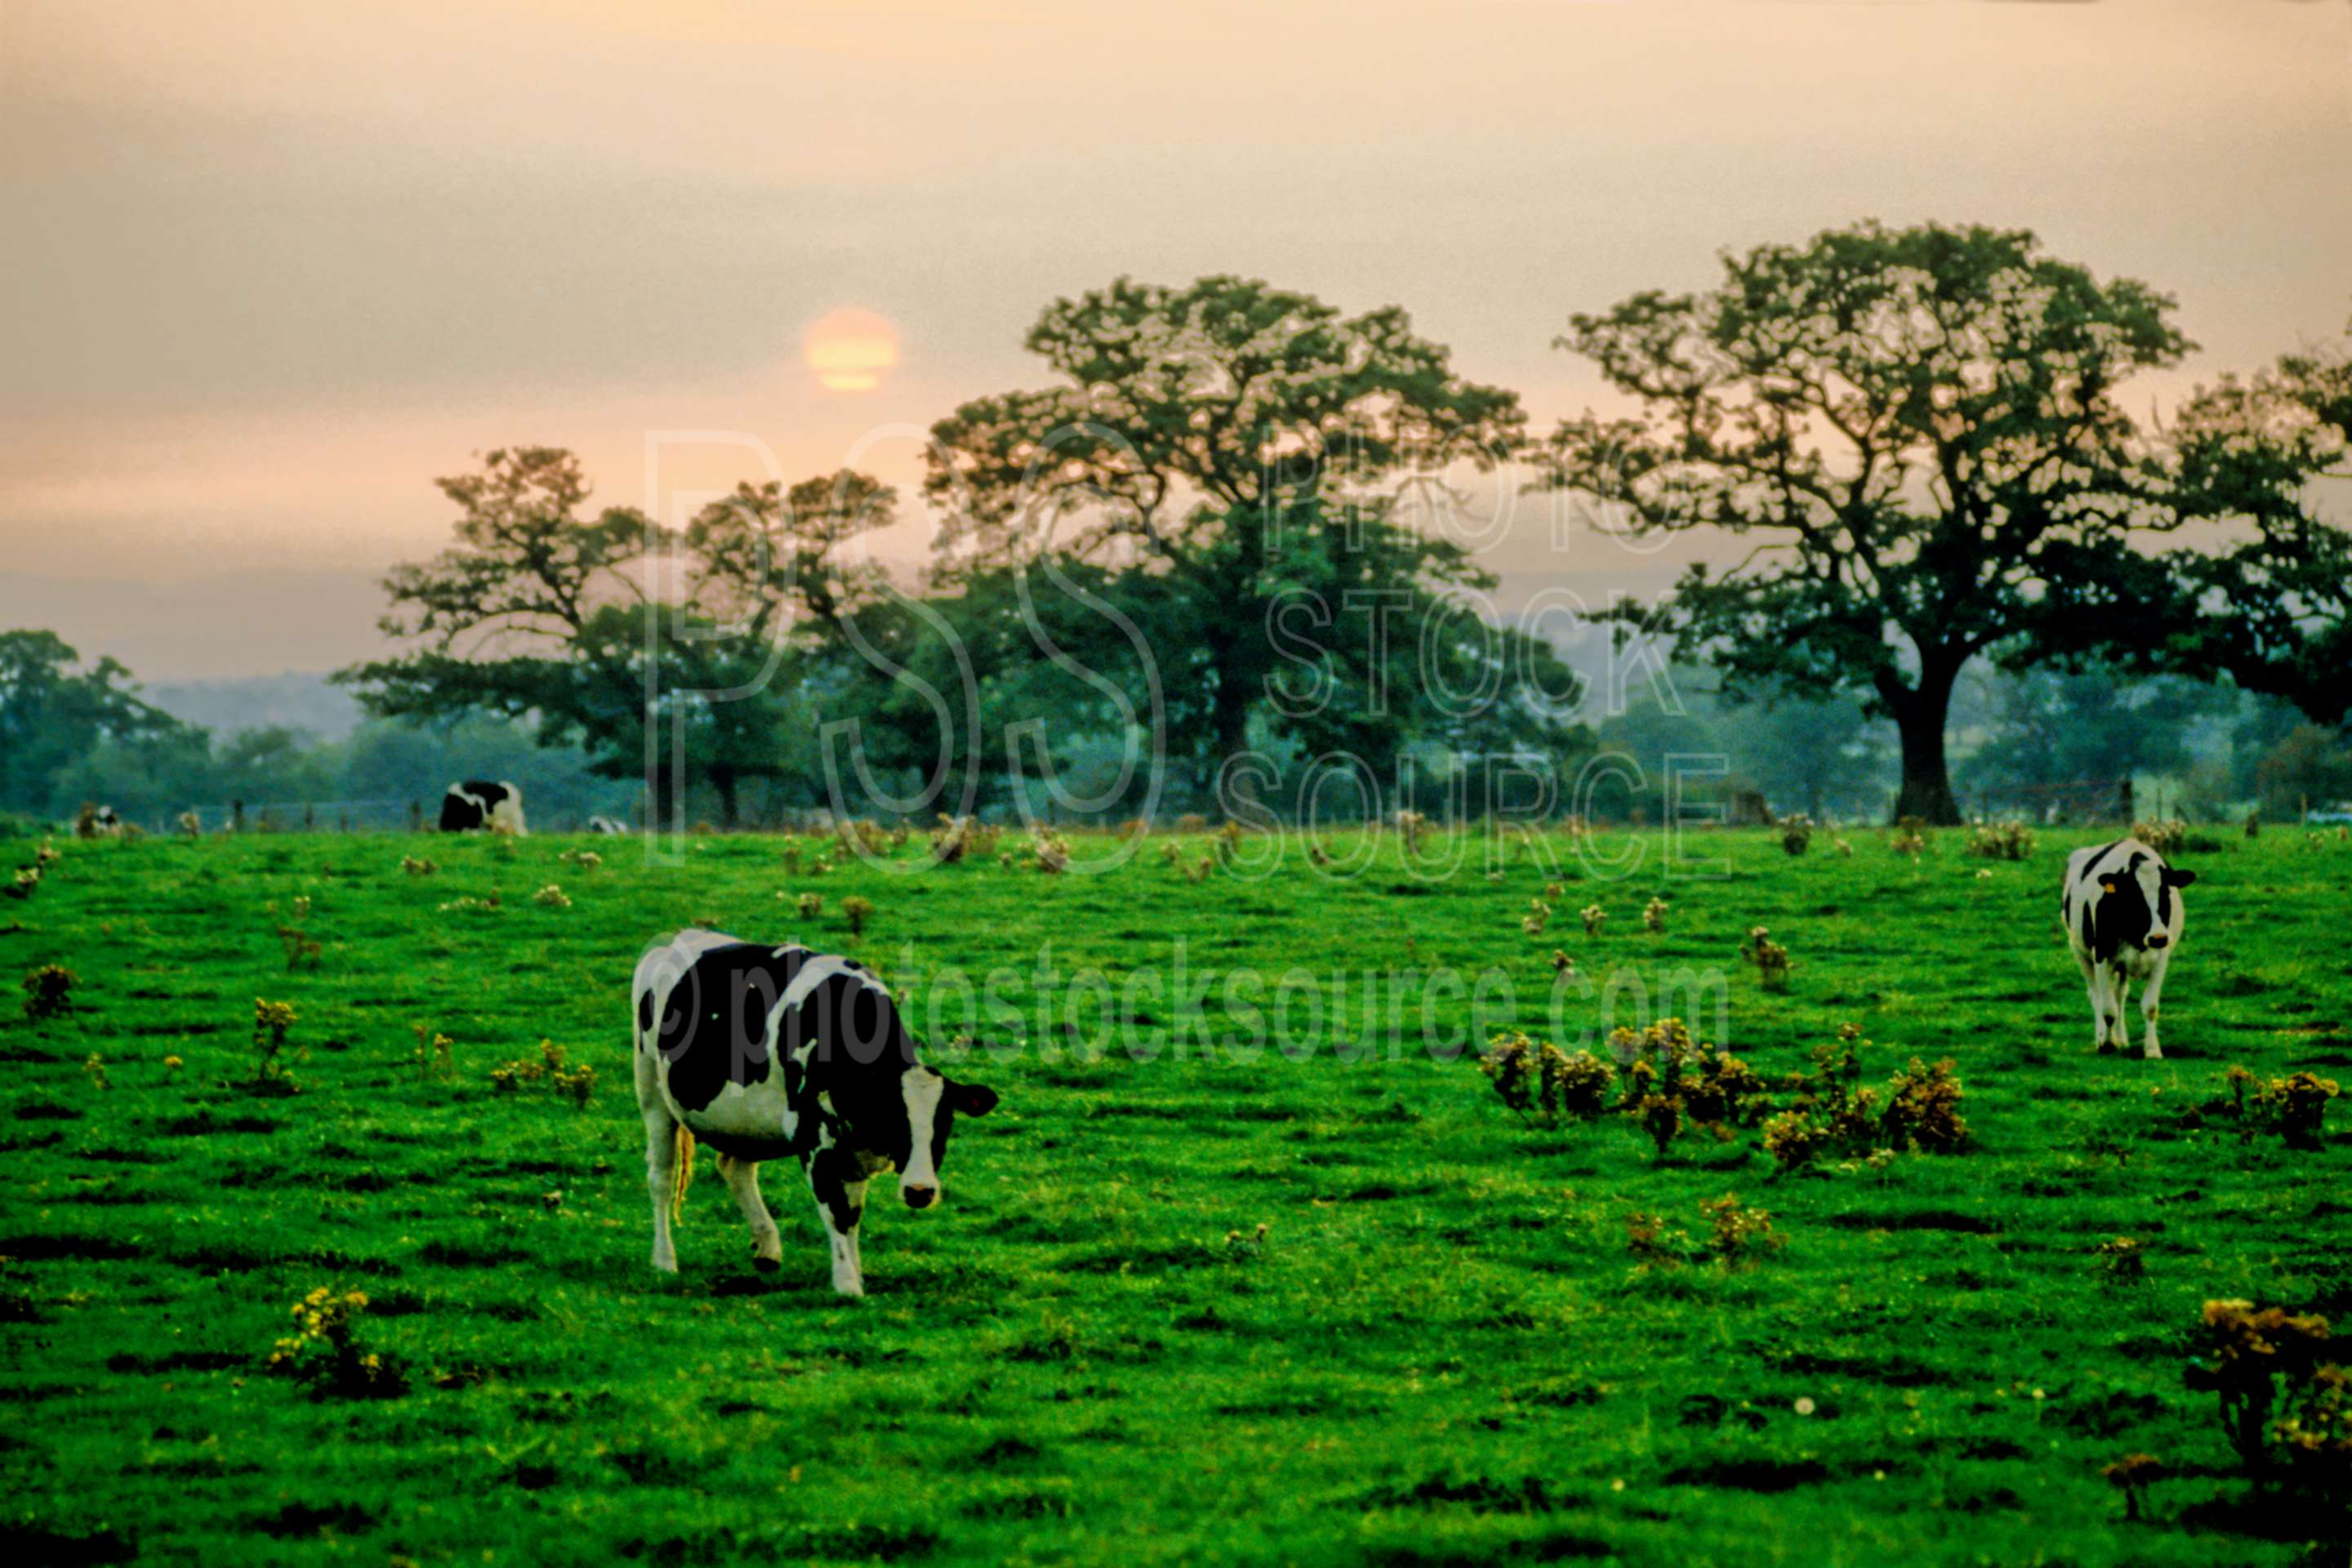 Cows at Sunset,cows,europe,field,sunset,animals